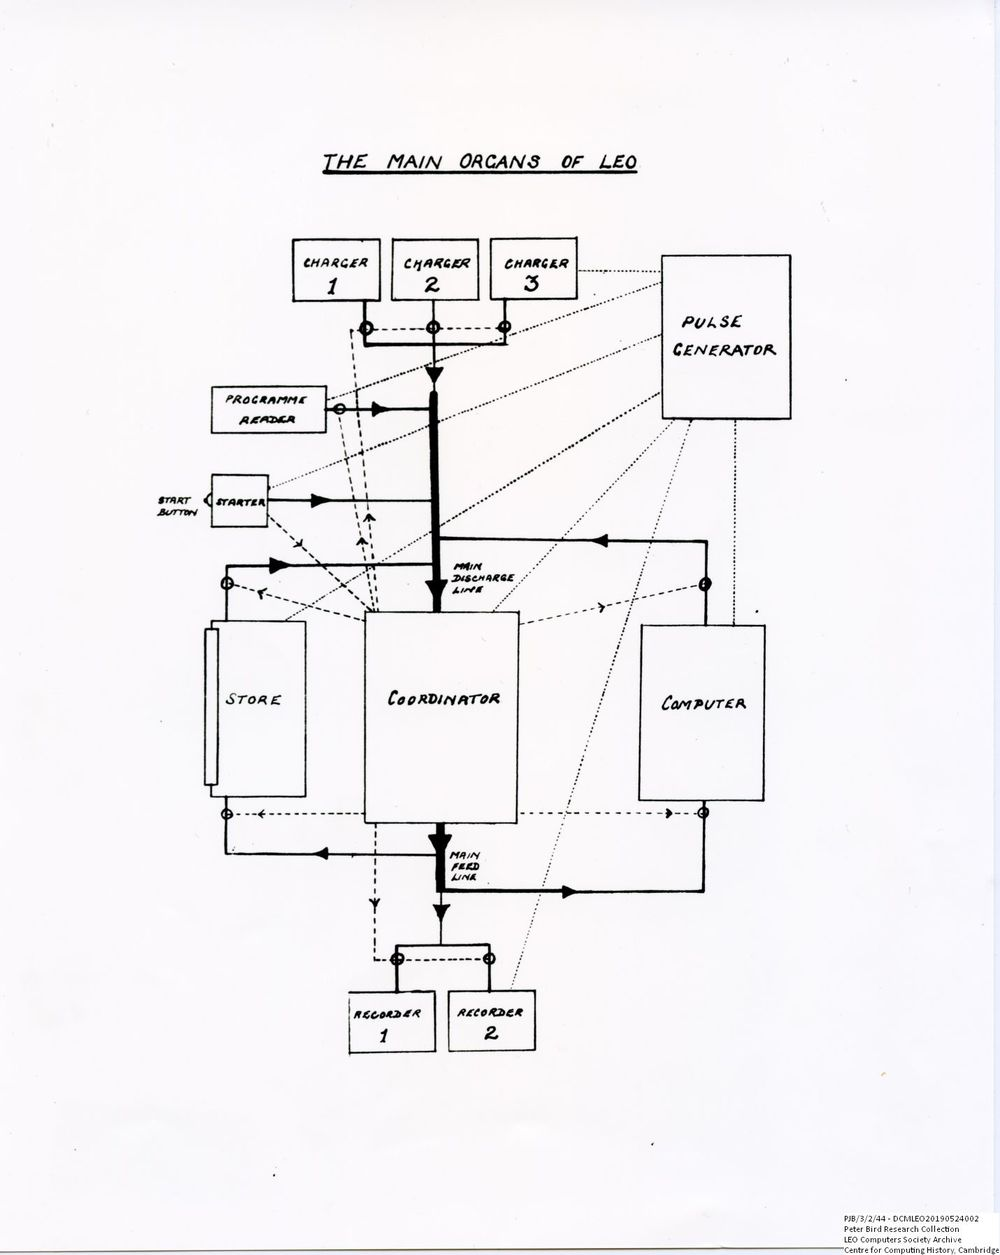 Scan of Document: 60637 Flowchart 'The Main Organs of LEO', LEO I